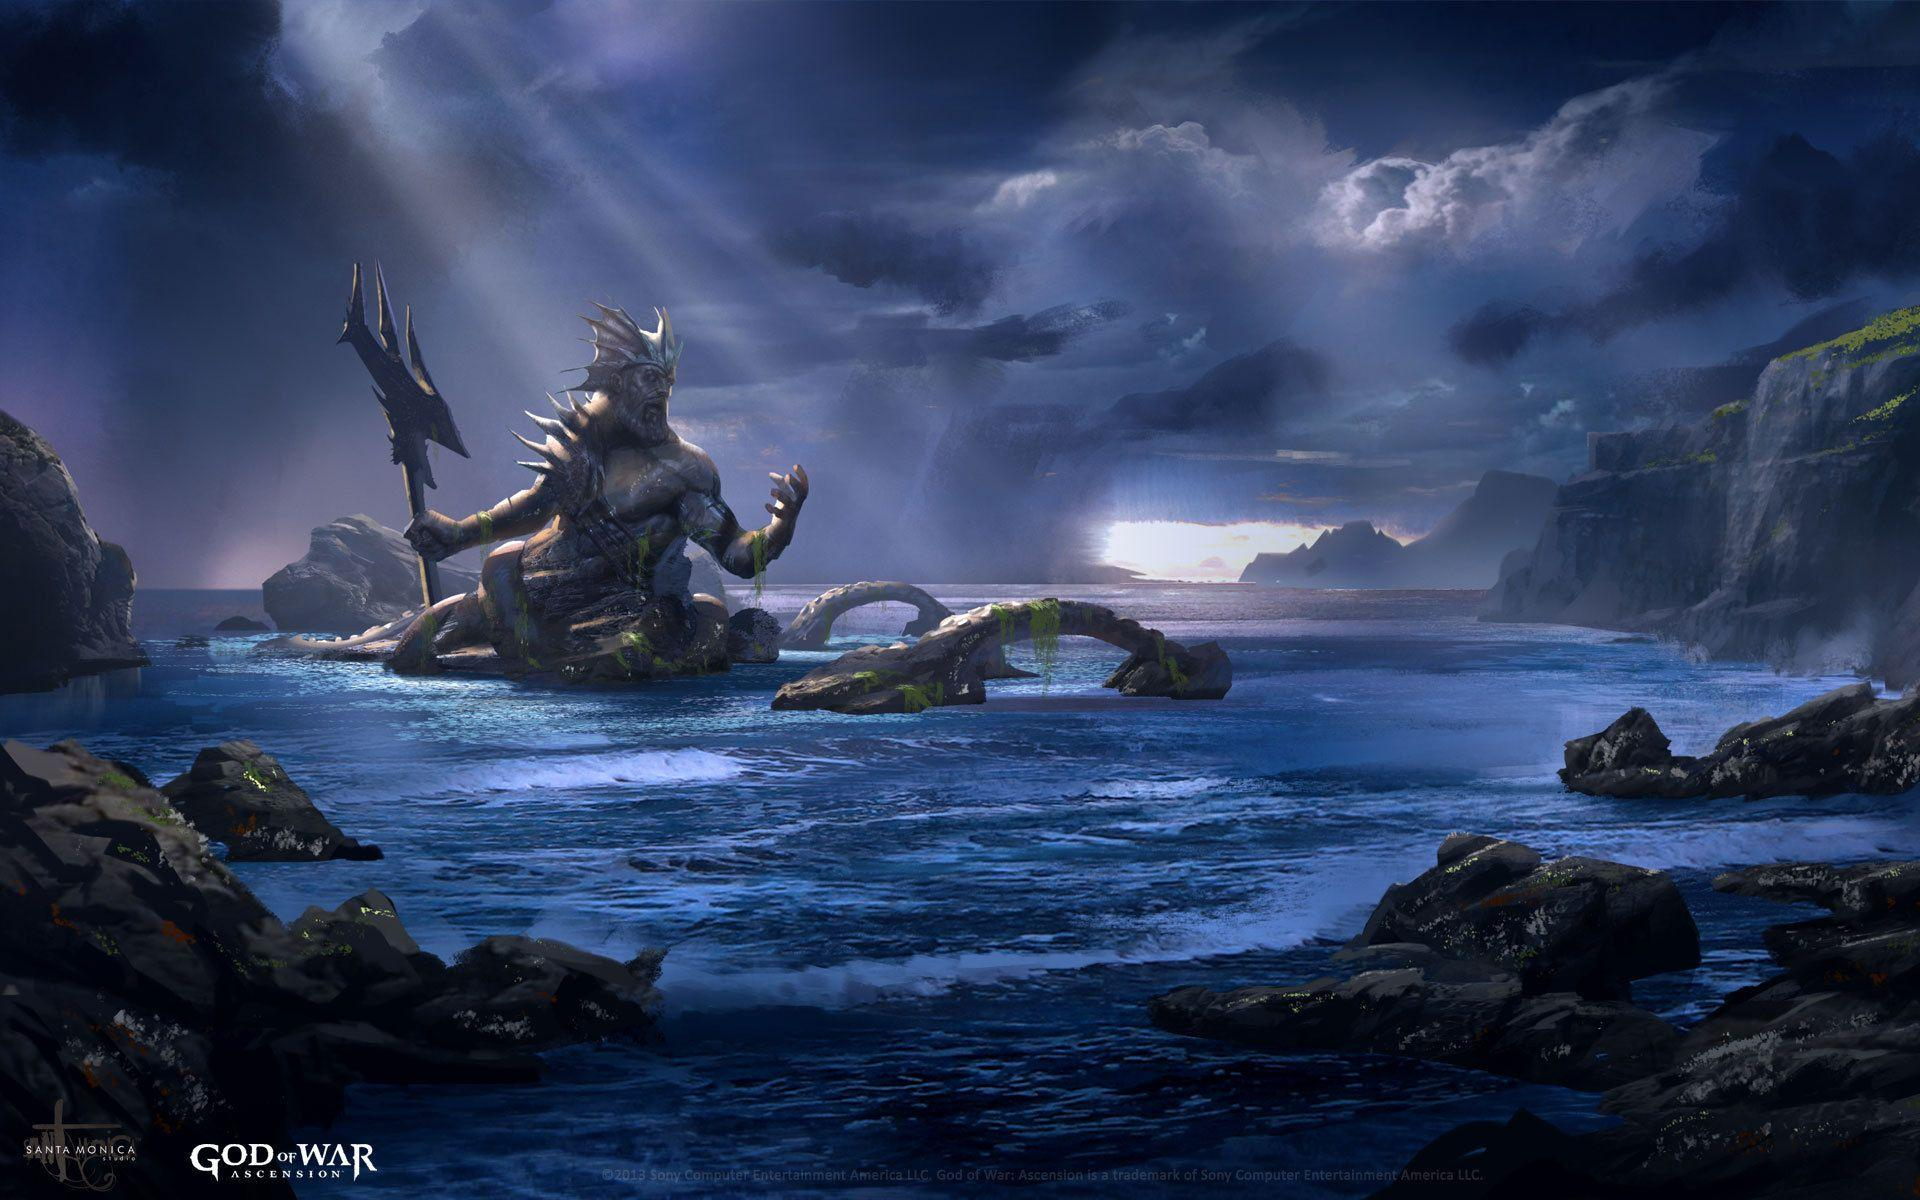 God of War: Ascension: sea monster wallpapers and images ...